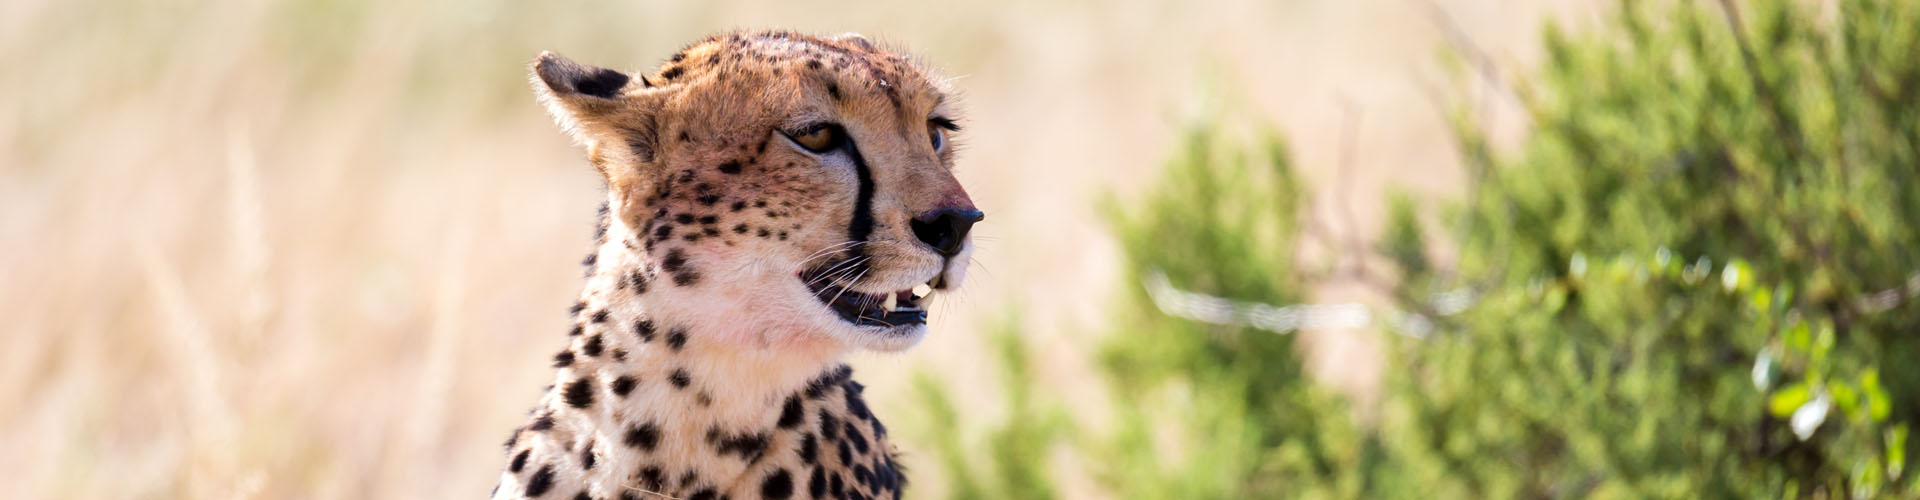 African Adventure Specialists - Cheetah in the Mara